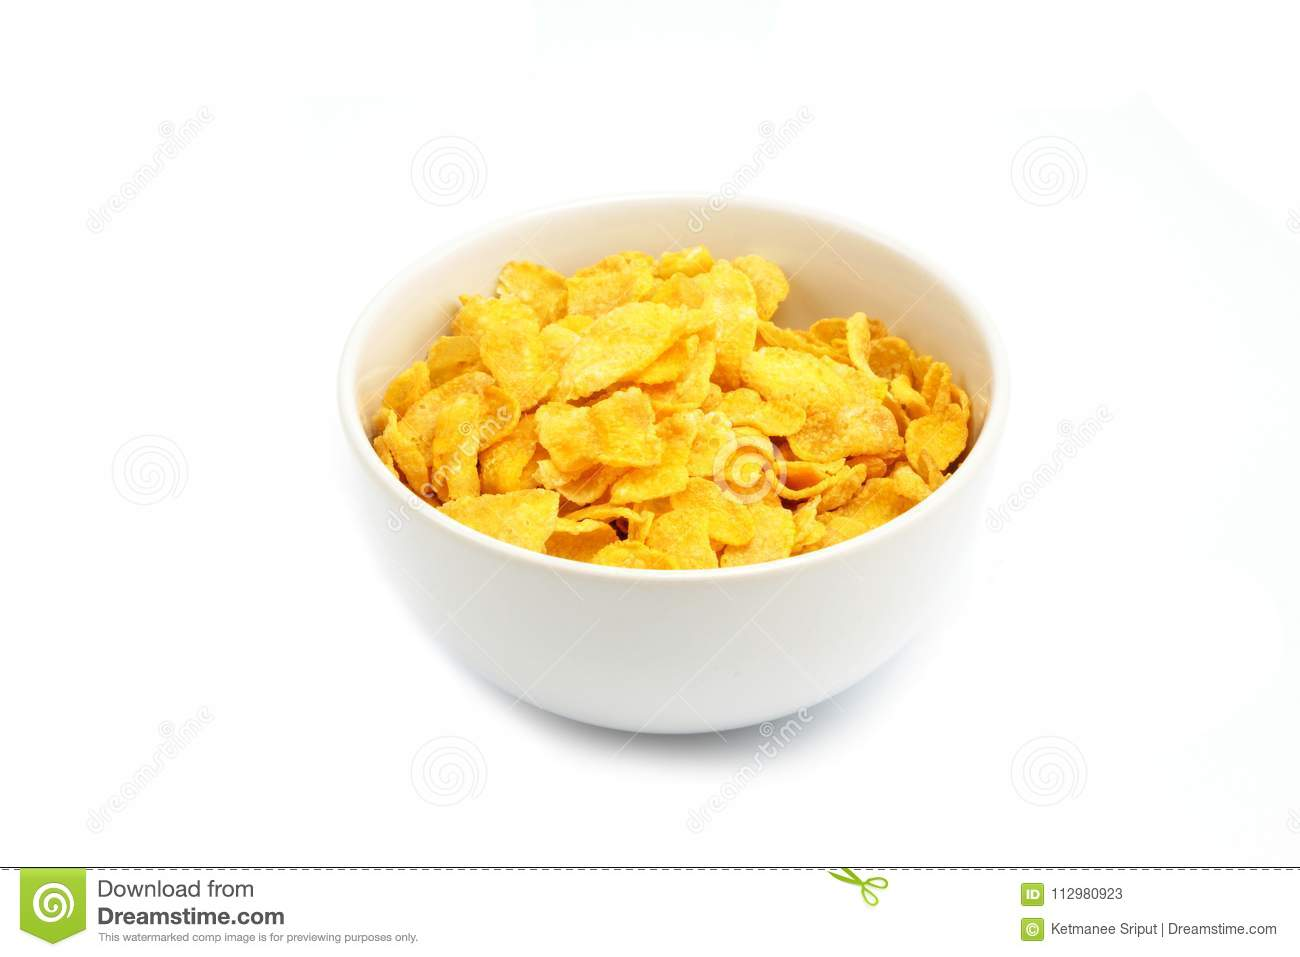 Cornflakes or cereal on white background